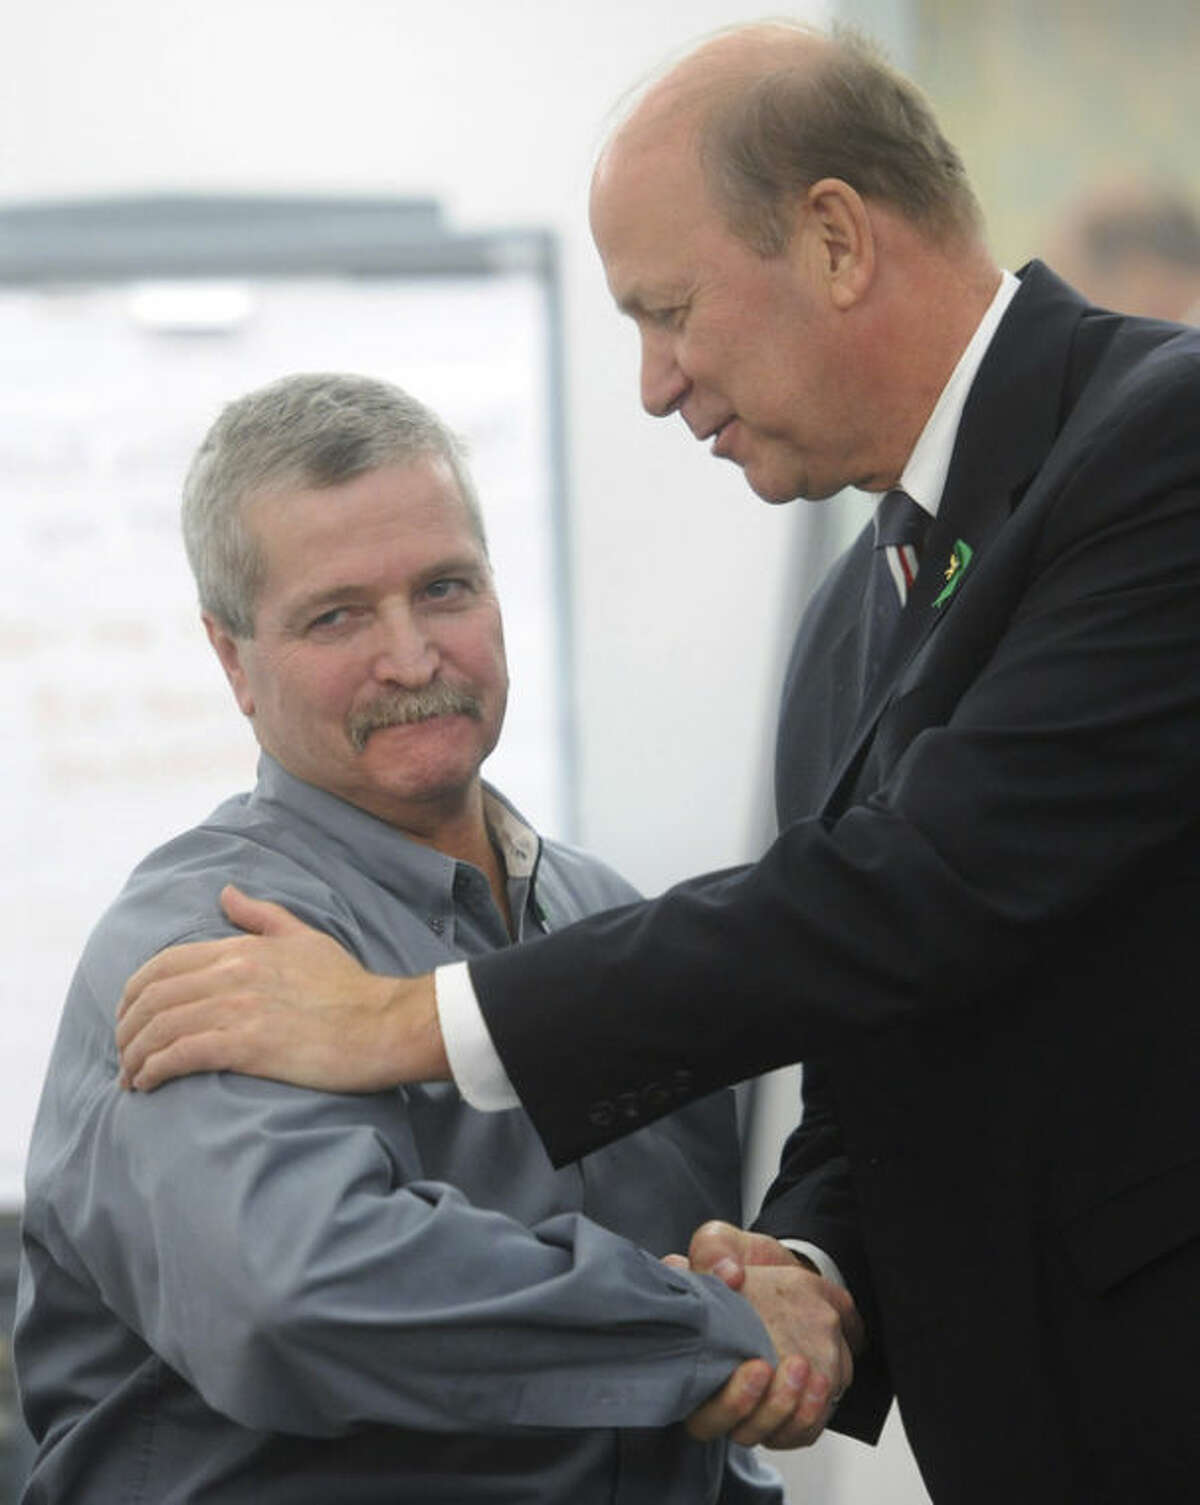 In this April 17, 2013 photo, Robert Nute, left, is congratulated by Newtown Police Chief Michael Kehoe after winning an emergency telecommunications award, at the Newtown Municipal Center in Newtown, Conn. Nute, of the Newtown Emergency Communications Center, handled dispatch calls during the Sandy Hook Elementary School shooting on Dec. 14, 2012. The dispatchers at the Newtown center have won praise from officials and colleagues around the country for their role in the response to the shooting. The call center director said the staff has been lifted by the outpouring of support as the dispatchers recover emotionally, along with the community that still peppers them with calls over anything out of the ordinary. (AP Photo/The News-Times, Tyler Sizemore) MANDATORY CREDIT